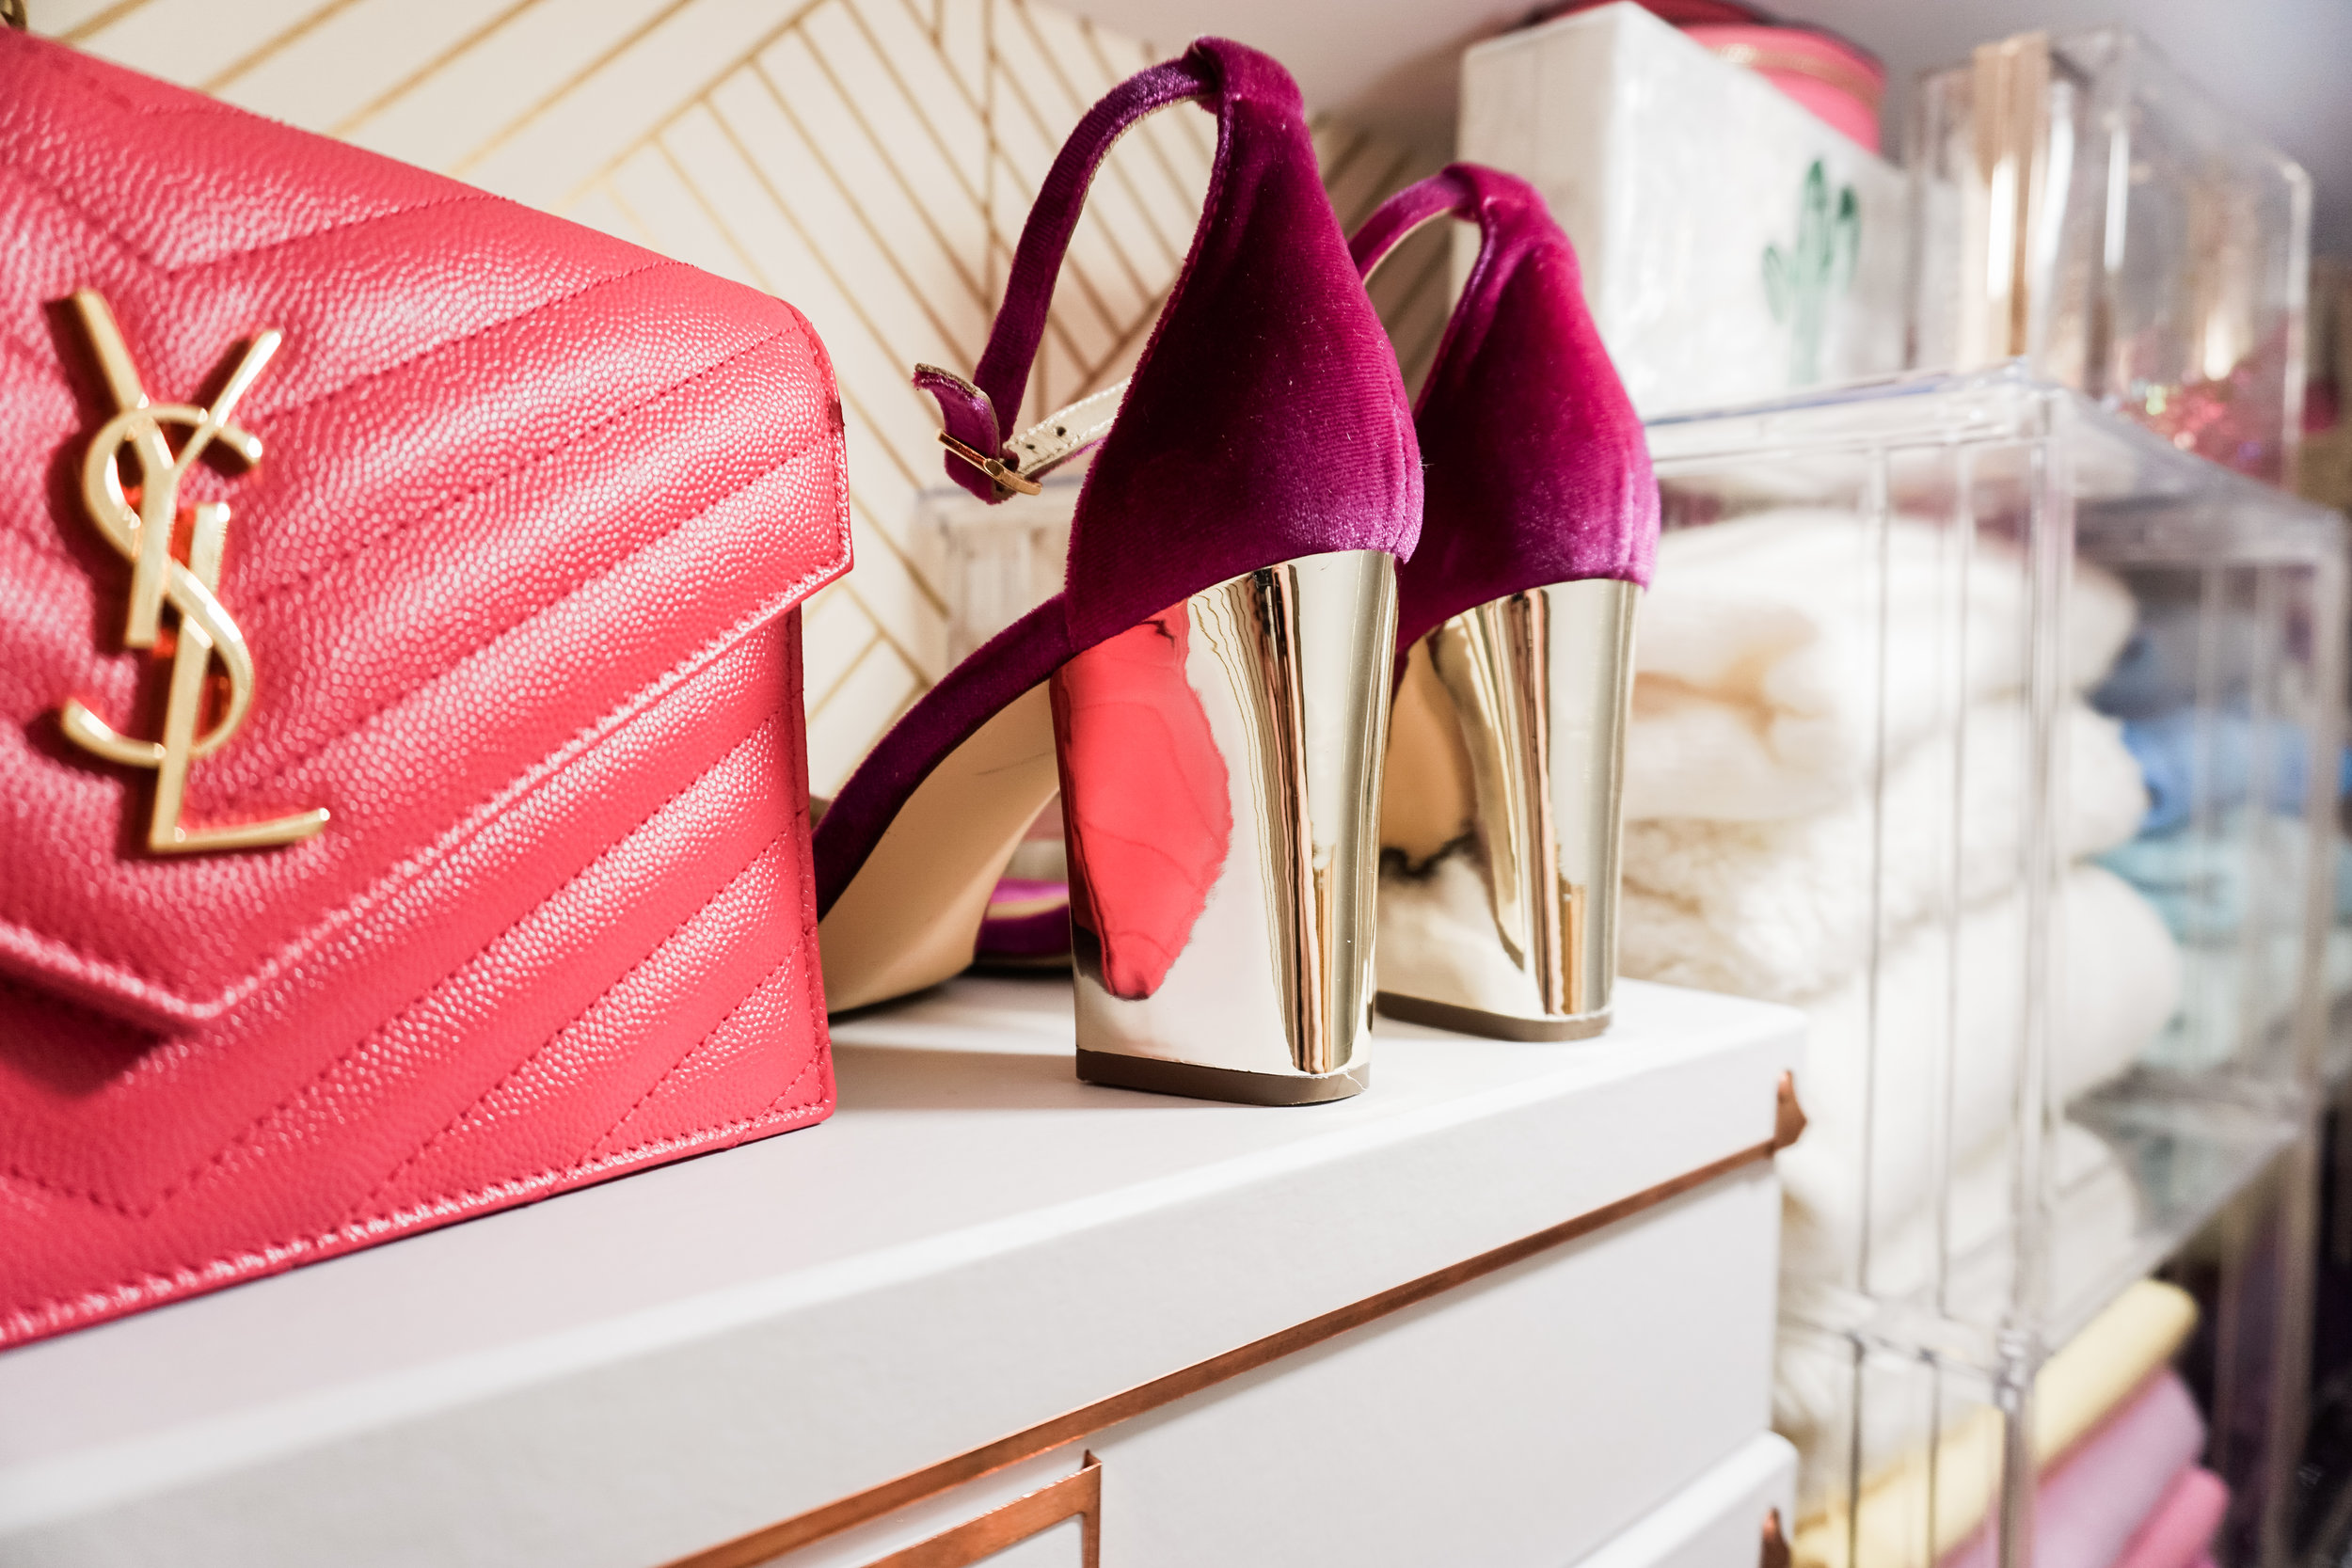 House of Turk | Closet Organization,  Shoes